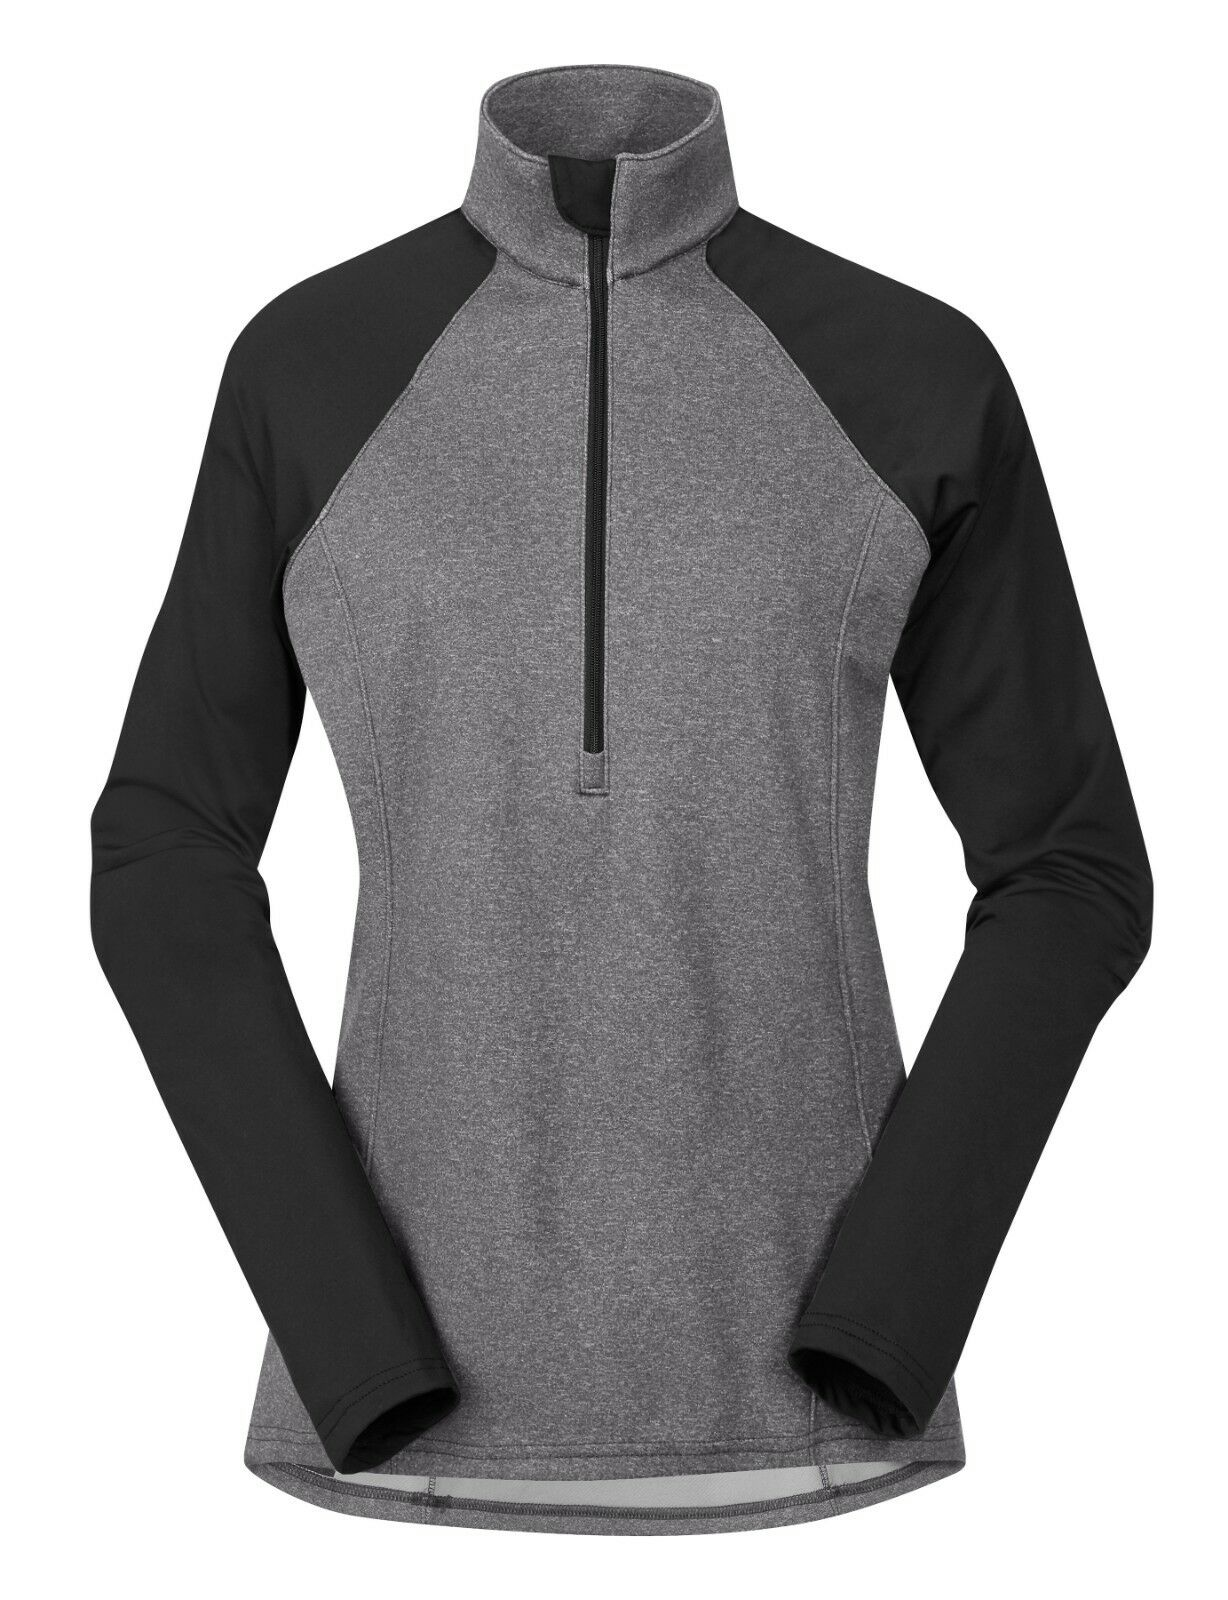 NWT Kerrits Daily Ride Half Zip - Charcoal Grey - Ladies Medium